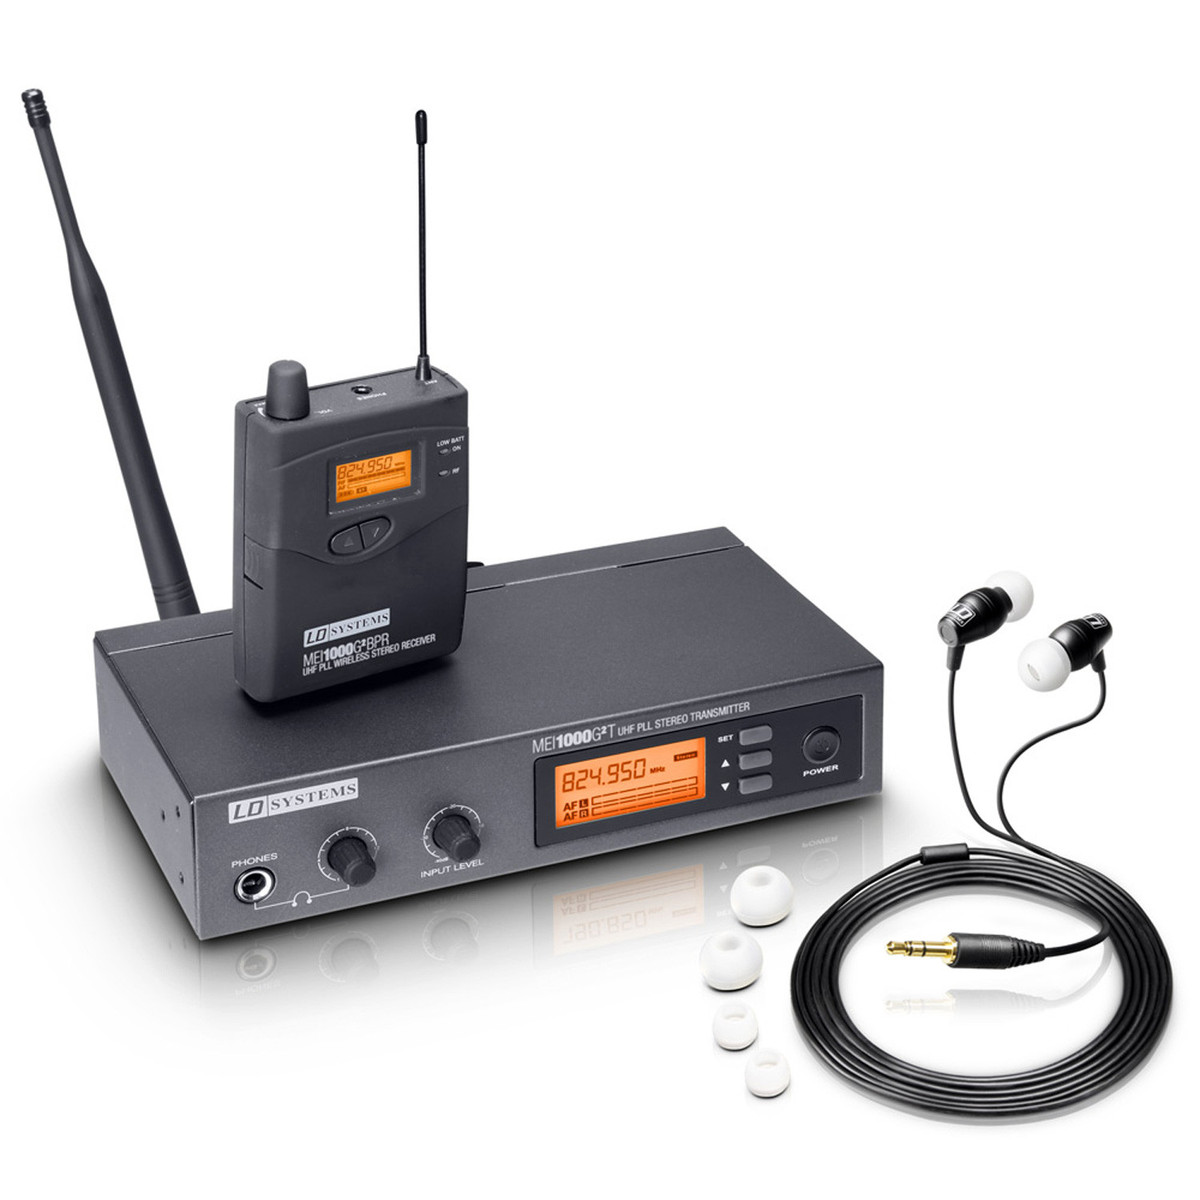 ld systems mei1000g2 in ear monitoring wireless system at gear4music. Black Bedroom Furniture Sets. Home Design Ideas